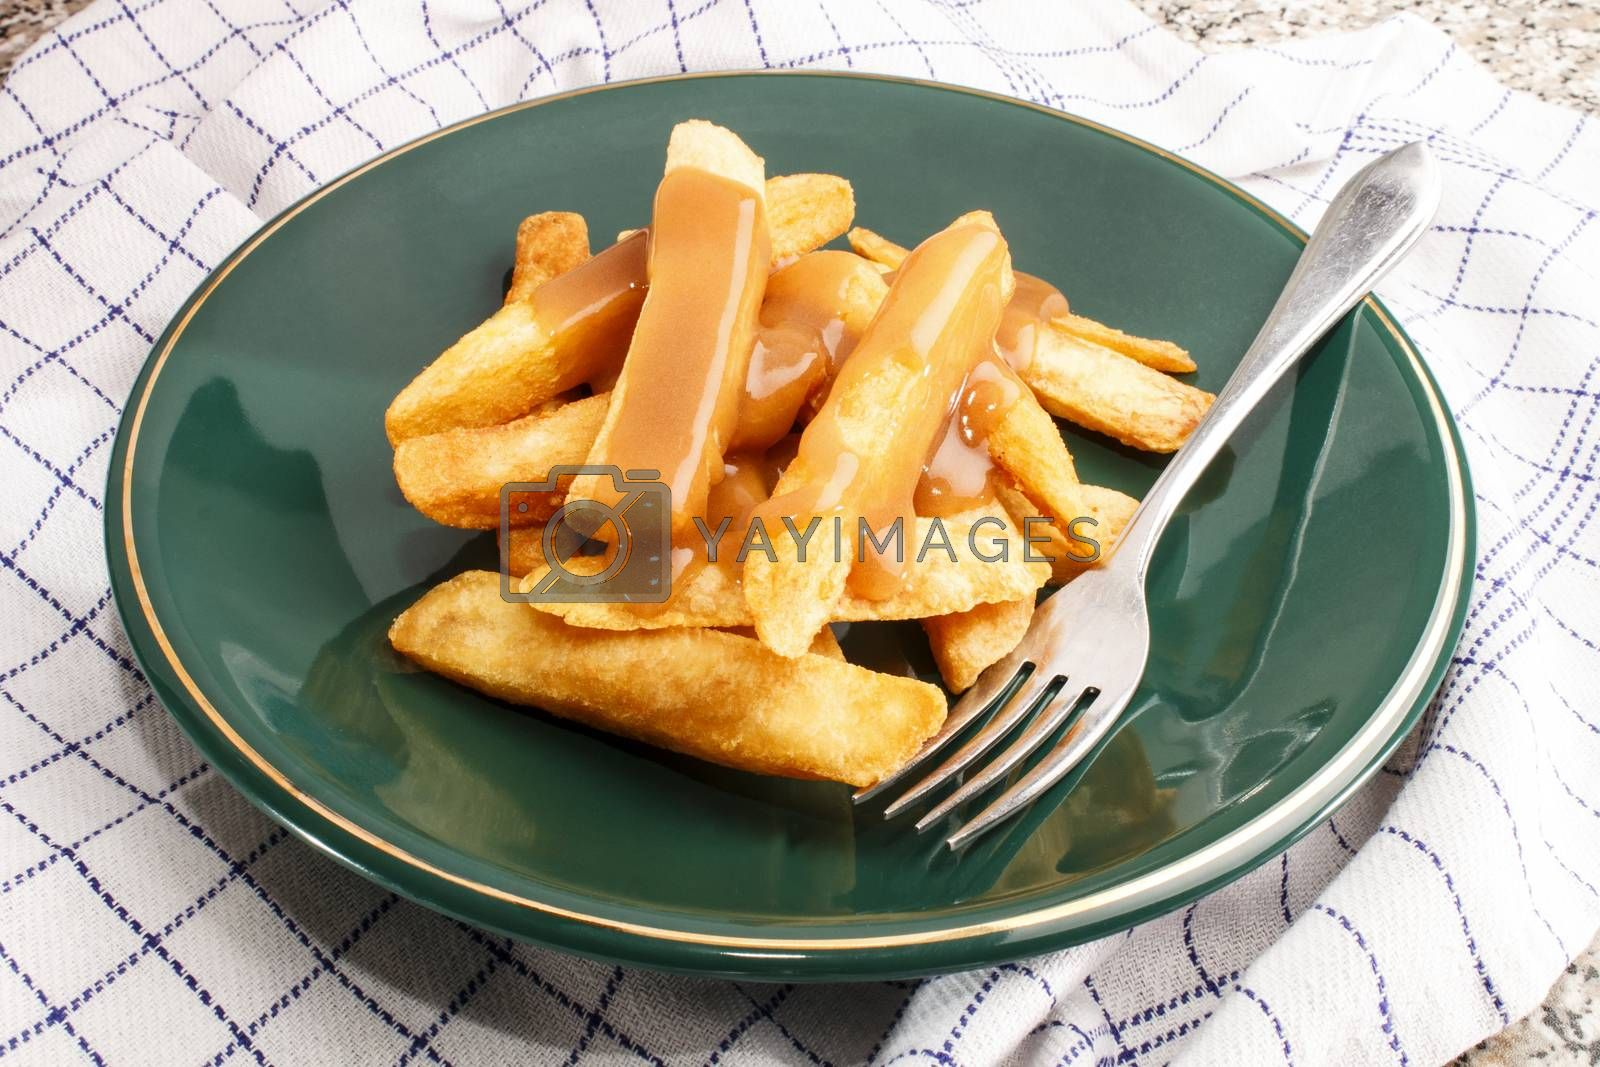 irish potato chips with gravy on a green plate with fork